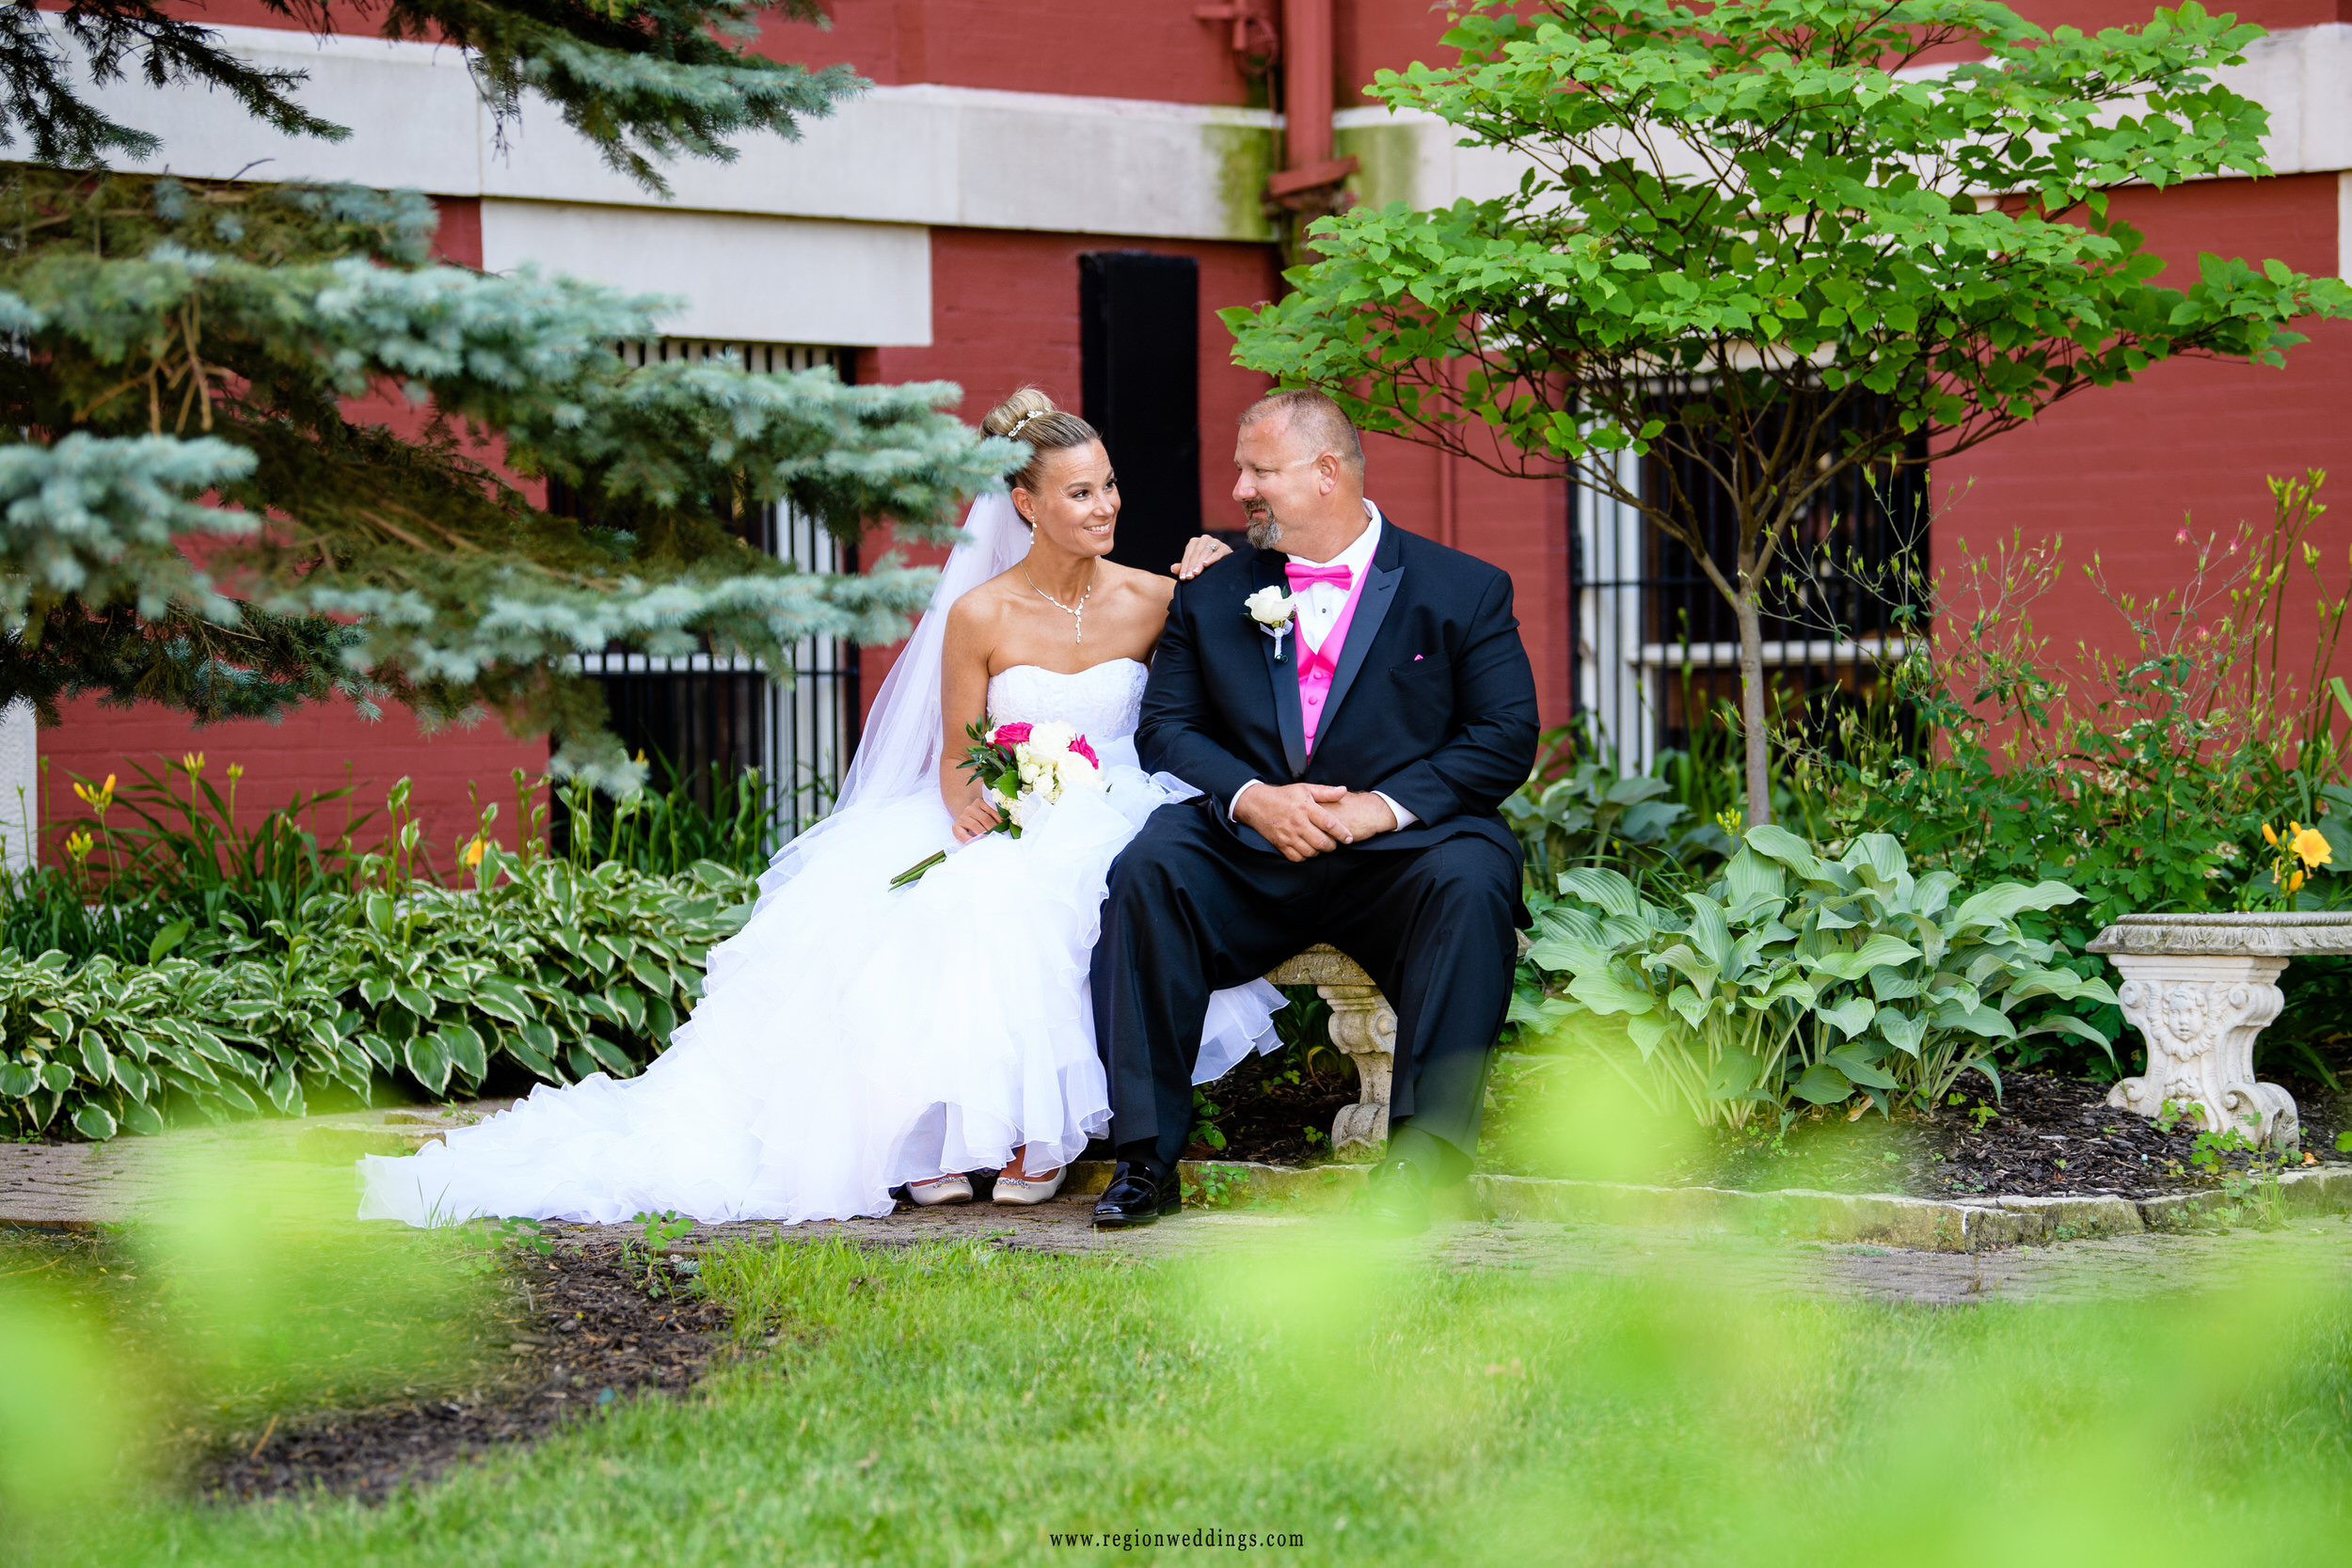 Bride and groom in the garden area of the Old Crown Point Courthouse.